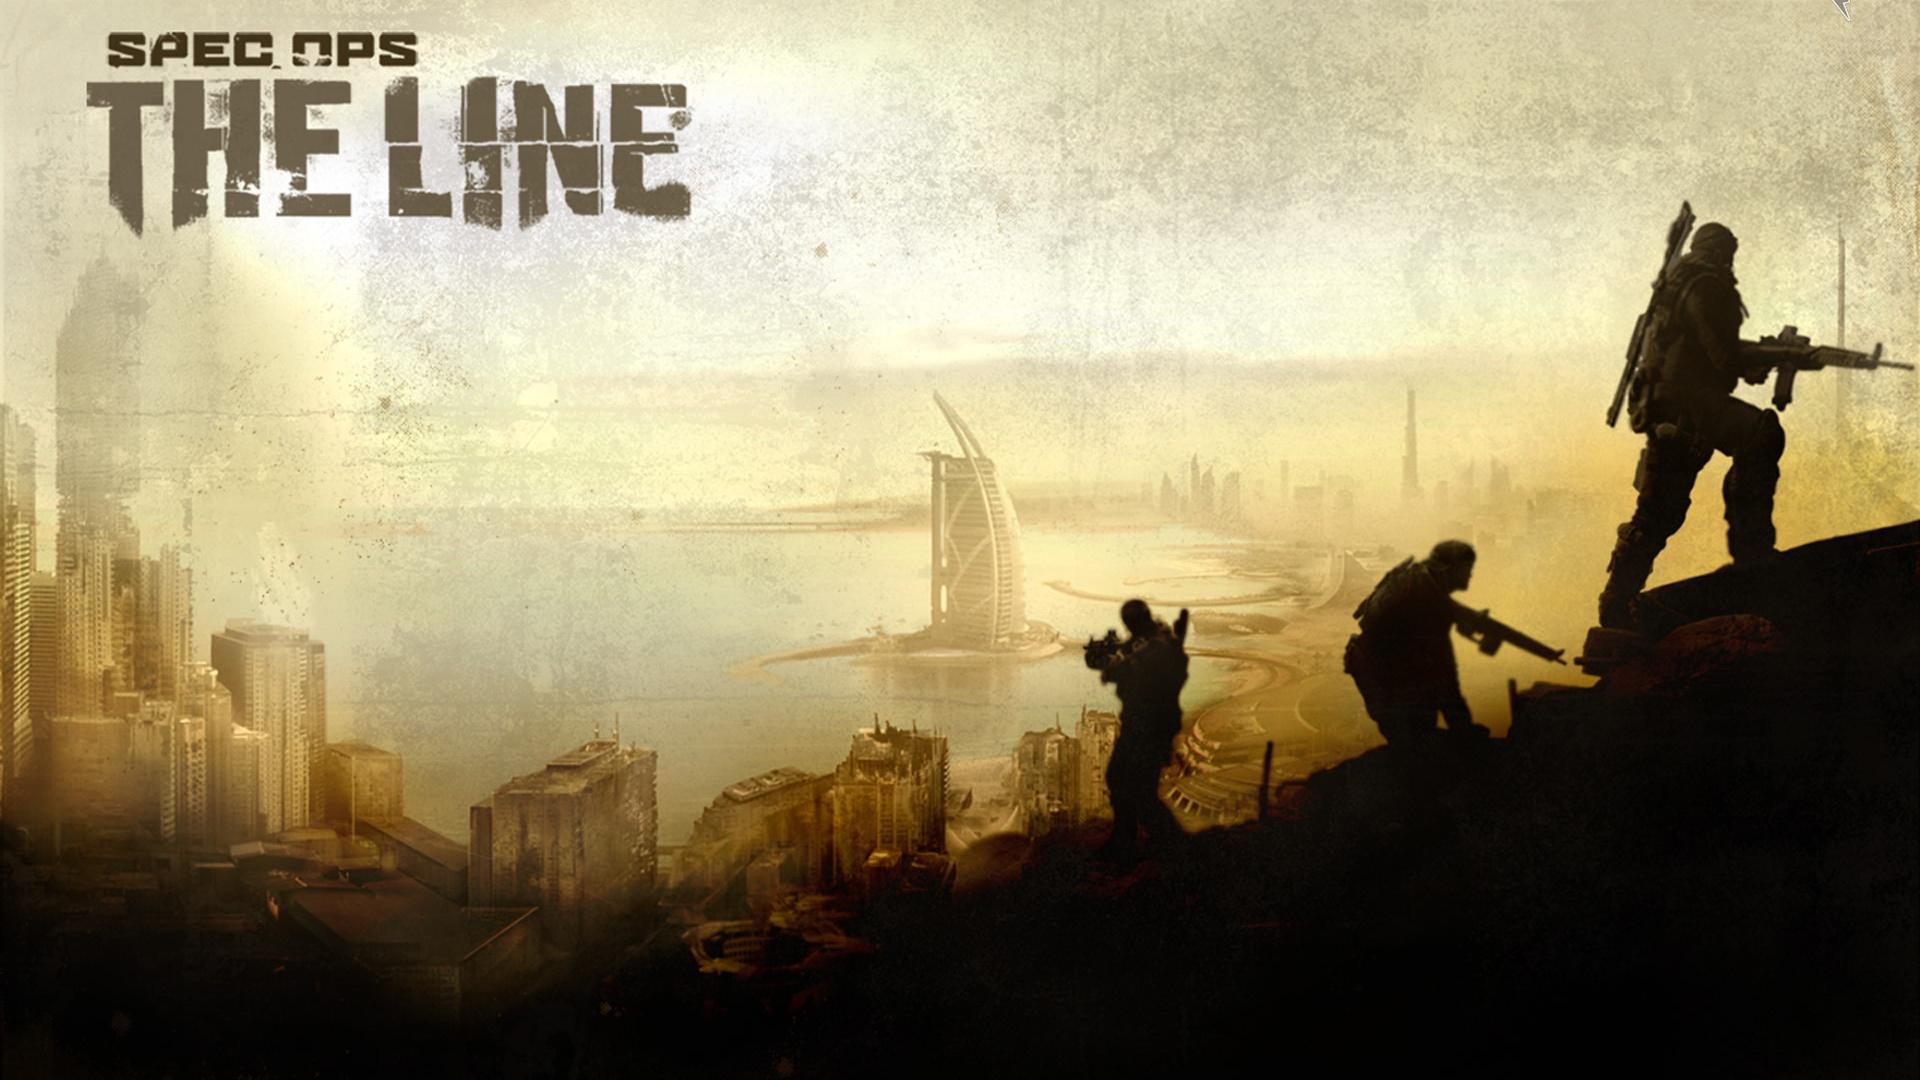 1920x1080 spec ops the line desktop pc and mac wallpaper for Wallpaper home line